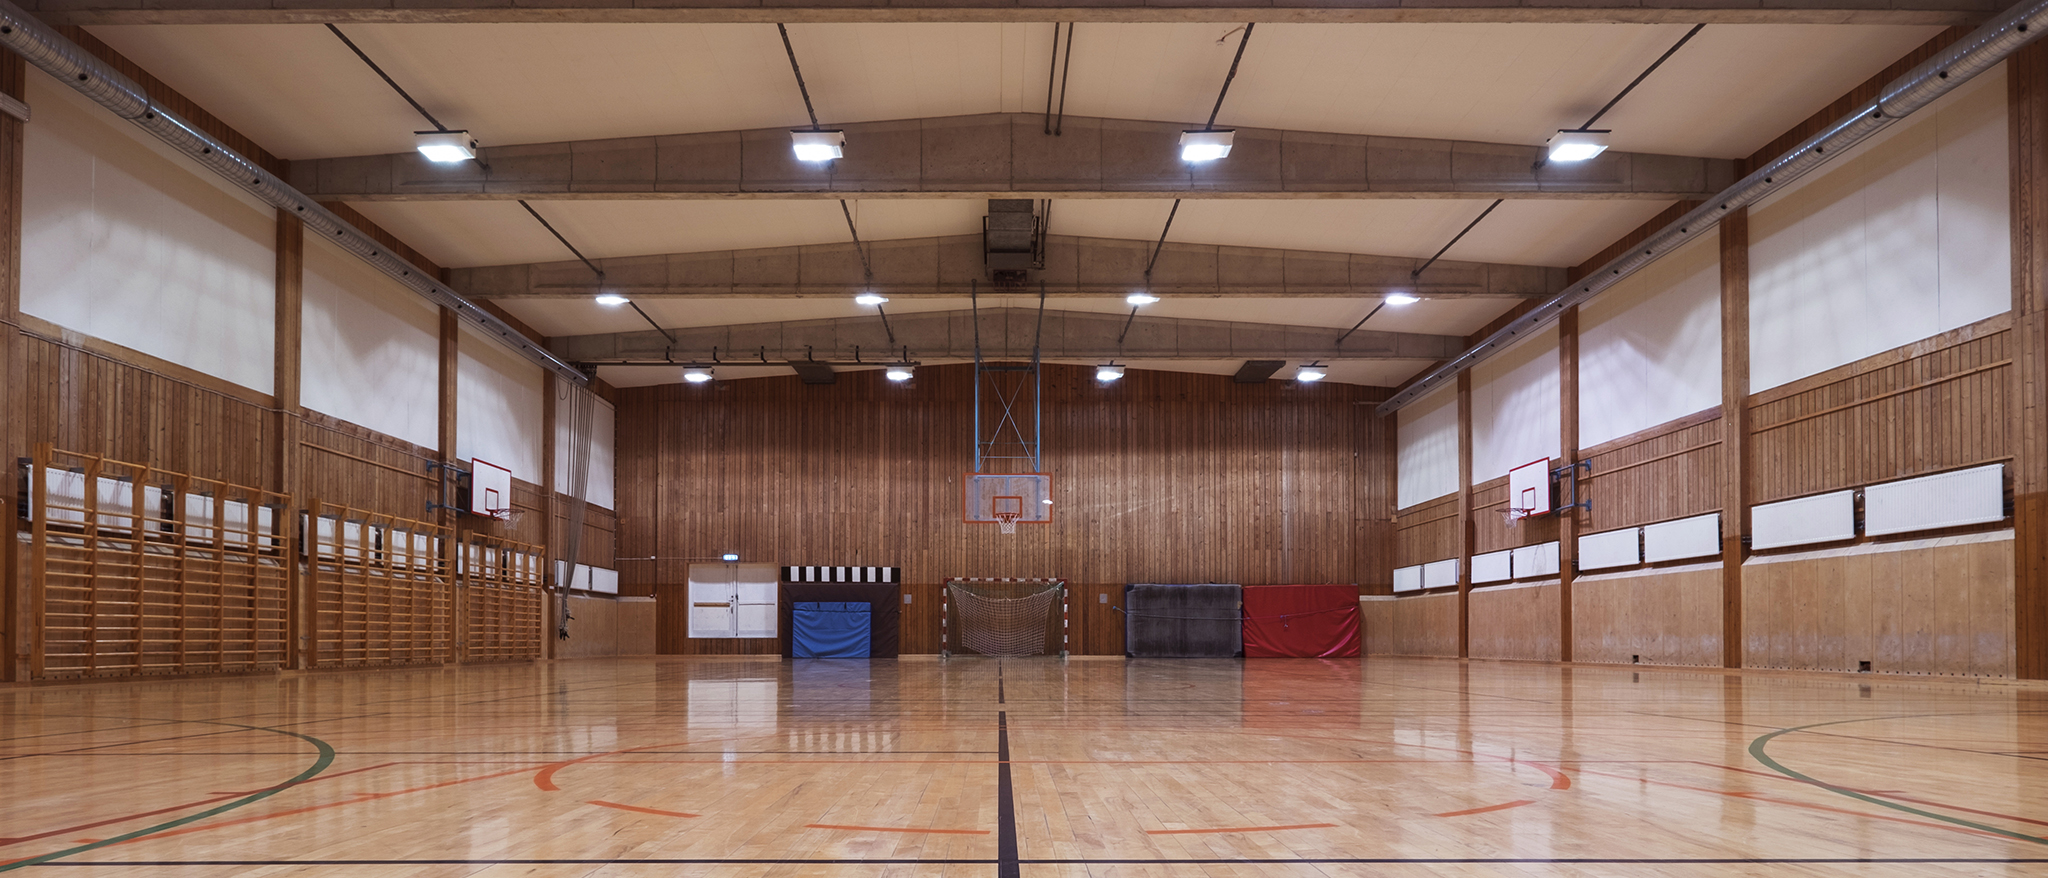 Led Lighting In The Spare Time How To Light Up A Sports